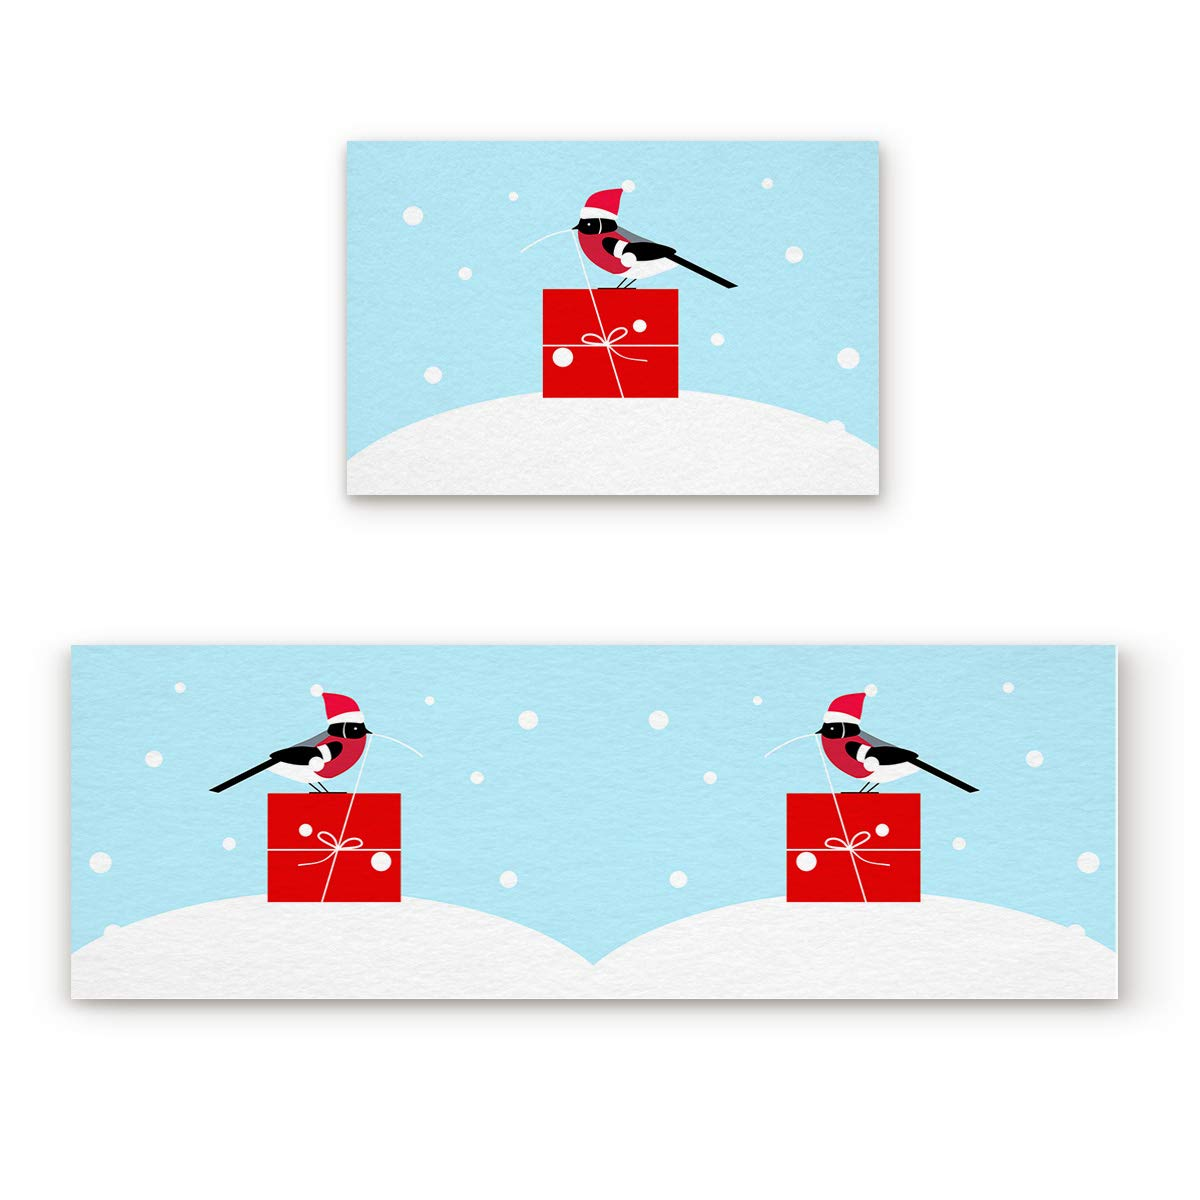 Bird1xsho7169 23.6''W by 35.4''L + 23.6''W by 70.9''L 2 Piece Non-Slip Kitchen Mat Rubber Backing Doormat Runner Rug Set, Kids Area Rug Carpet Bedroom Rug Abstract Xmas Bird with Santa Red Hat Peck Present in The Snow bluee 23.6x35.4in+23.6x70.9in